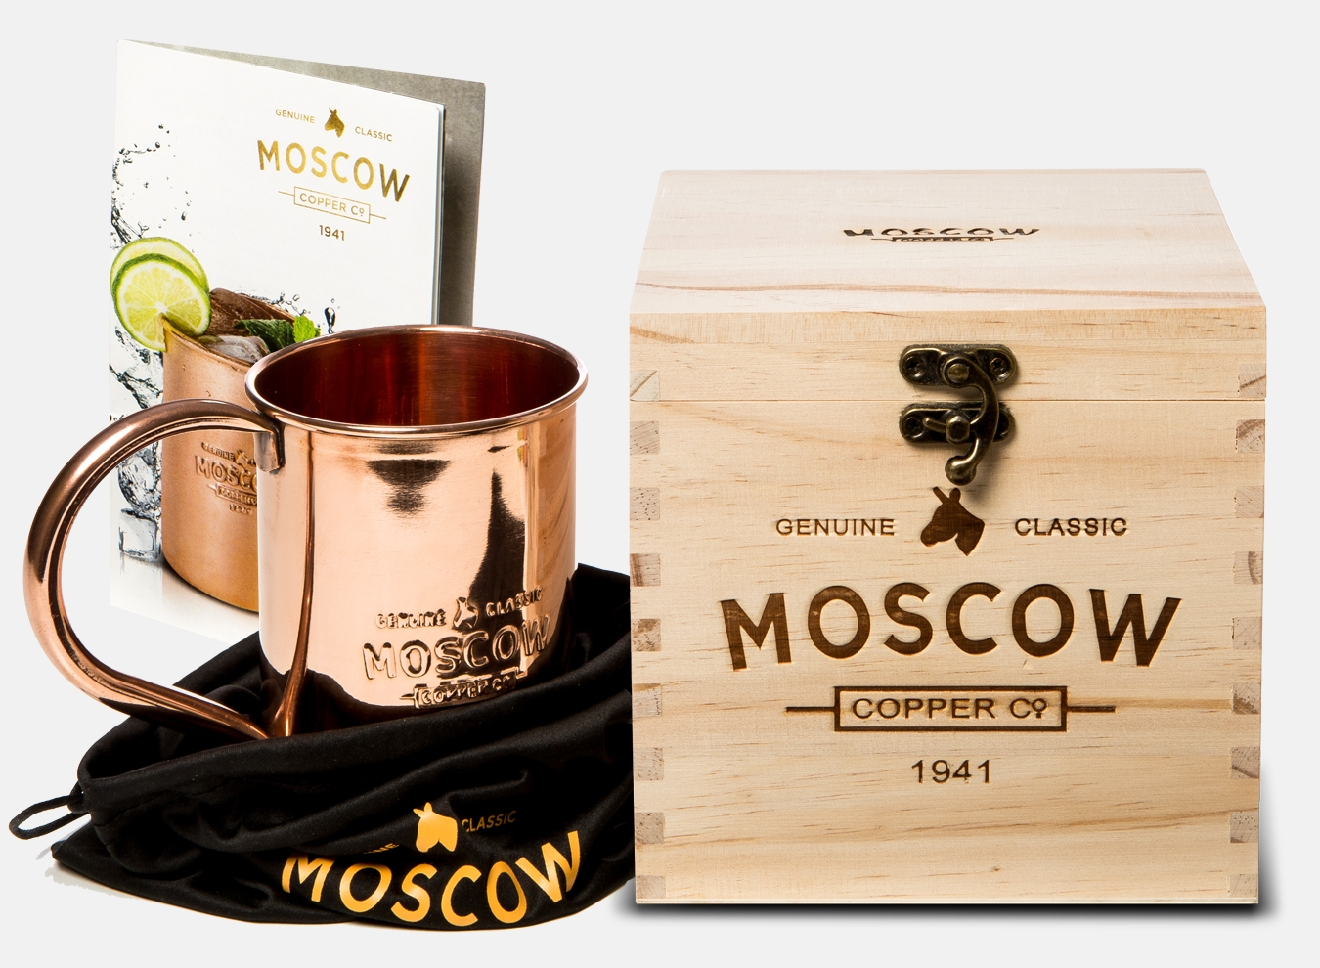 It's a drink that's been known to spur otherwise law-abiding guests into absconding with the glassware -- an icy, spicy concoction that mixes up quickly and goes down even more easily. Of course, we're talking about the Moscow Mule, which is celebrating its 75th anniversary this year. (Image: Courtesy  Moscow Copper Co)